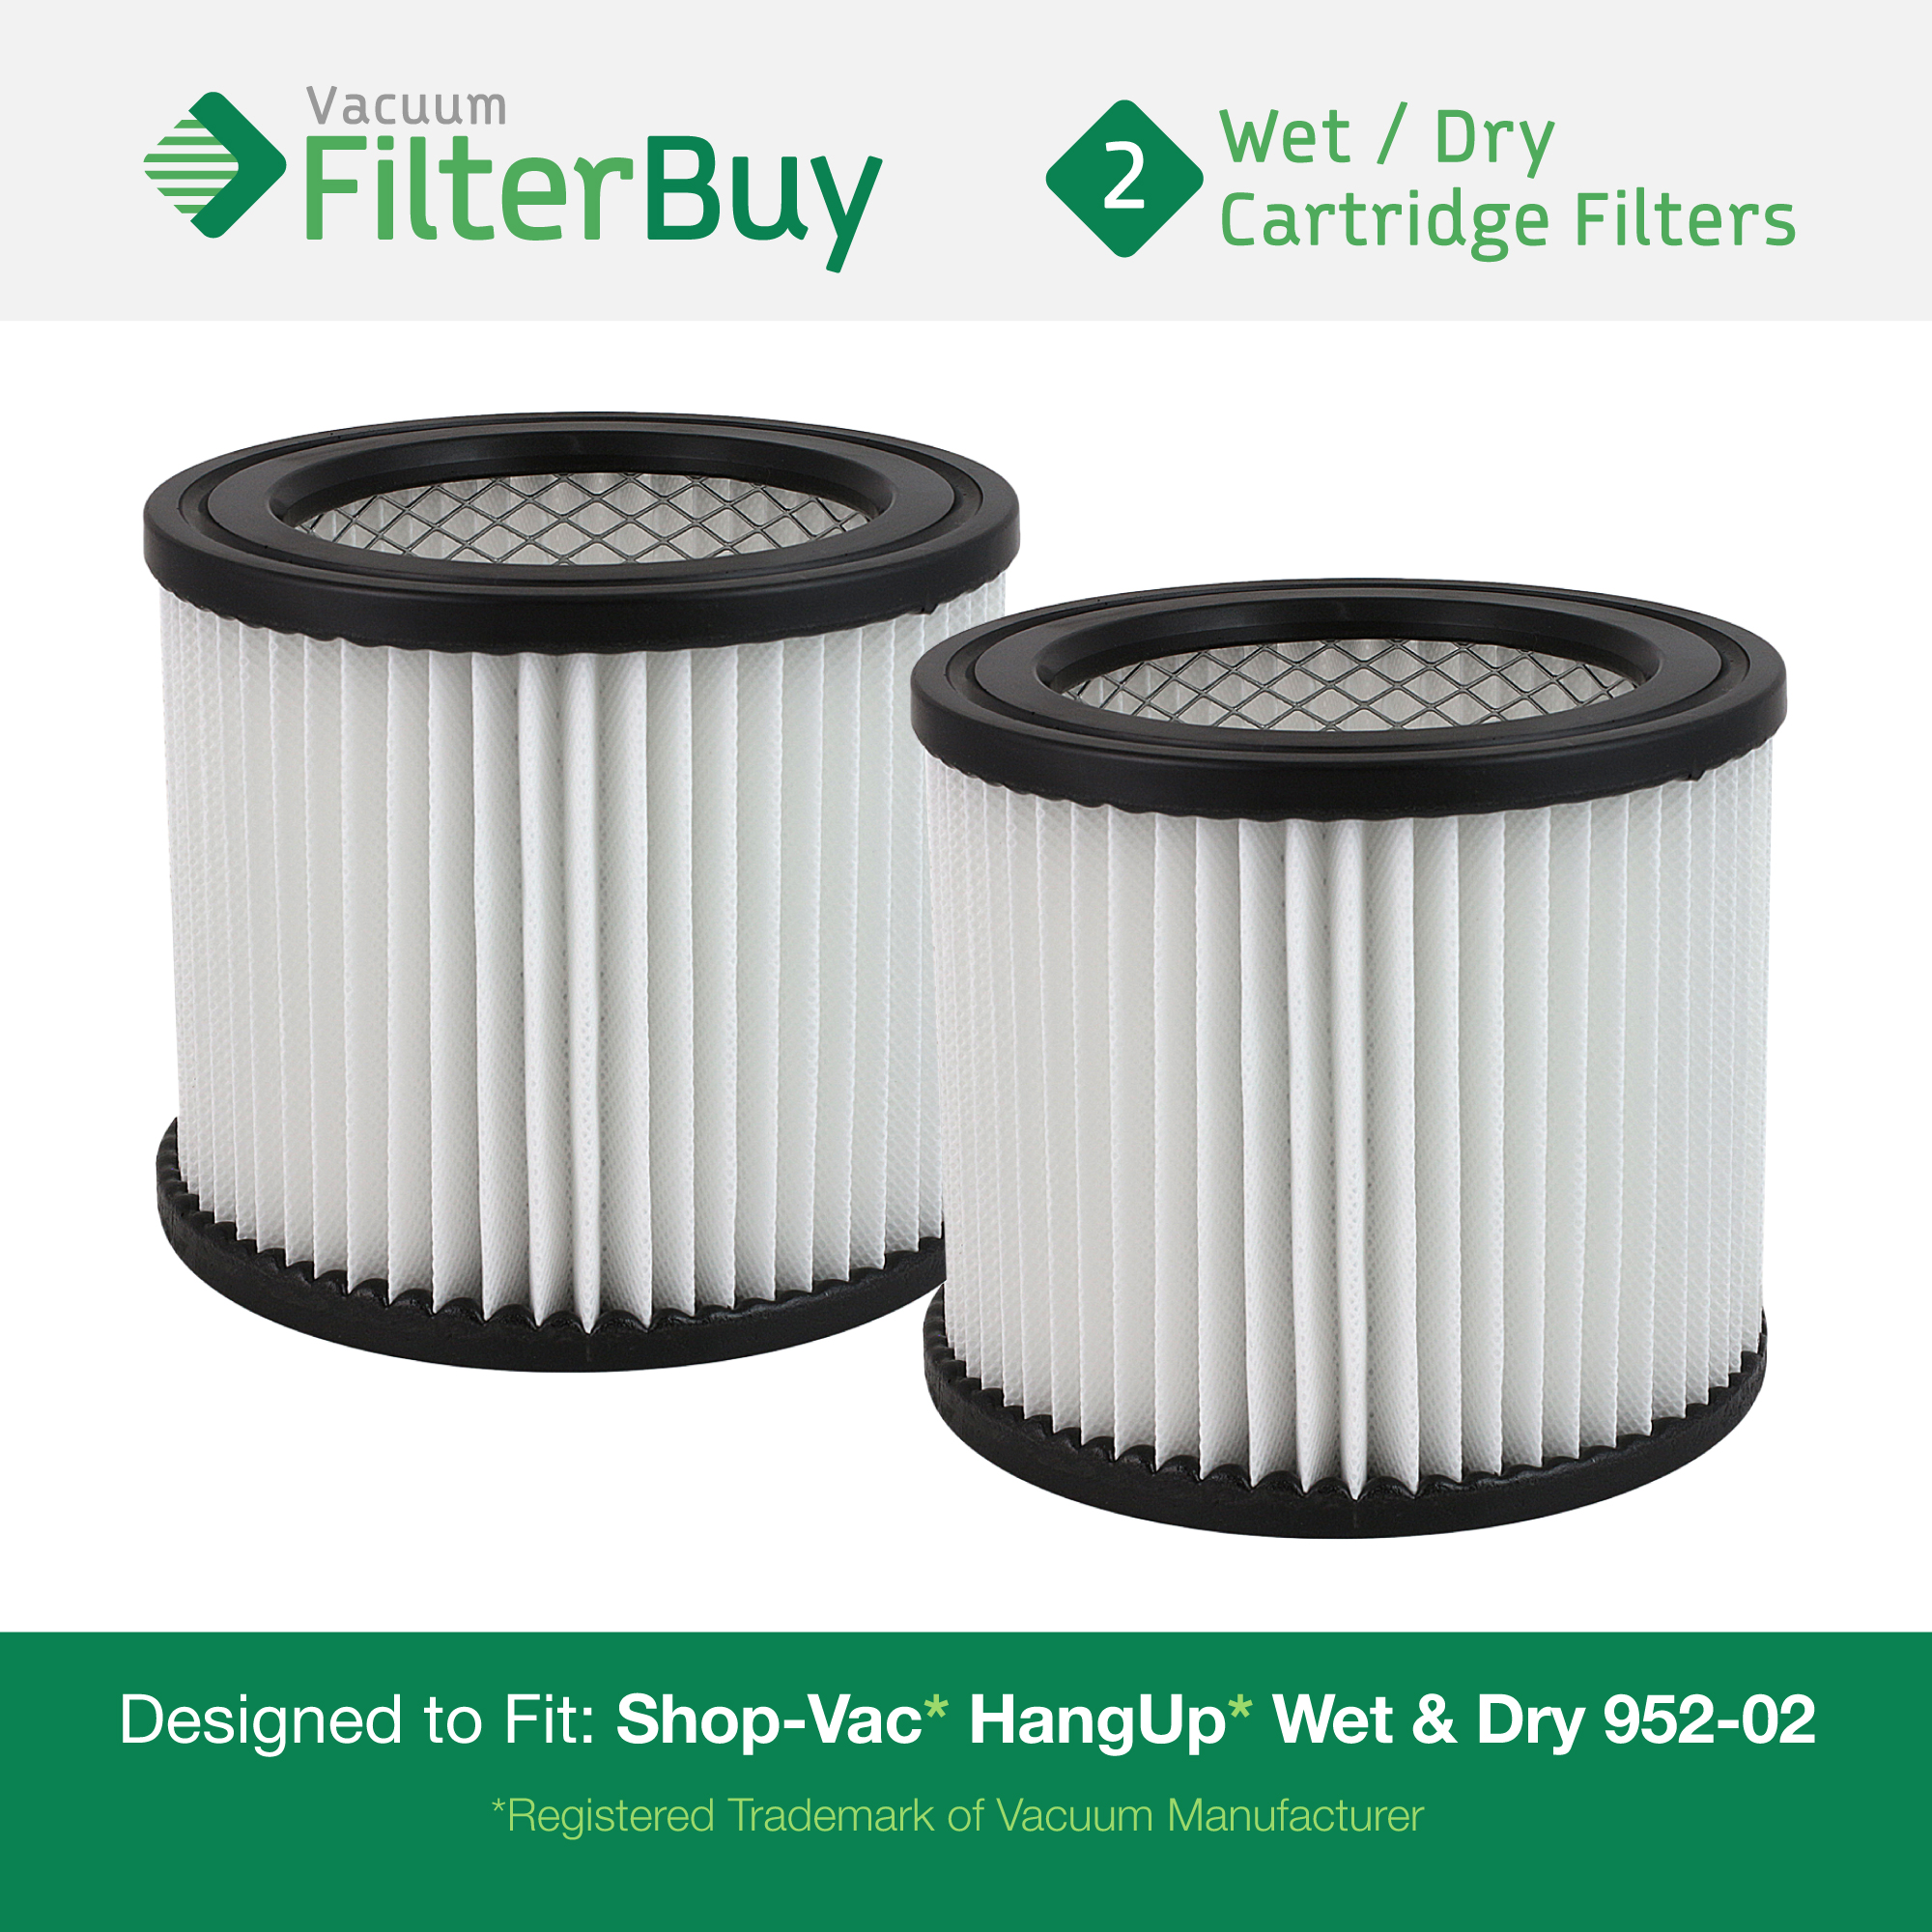 2 - Shop-Vac 9039800, 903-98-00, 90398 Vacuum Cleaner Filters. Designed by FilterBuy to fit Shop-Vac H87S550A, 587-24-62, E87S450, 587-04-00, 286-00-10, 962-15-00, 394-20-00, 394-20-00, and SP650C.